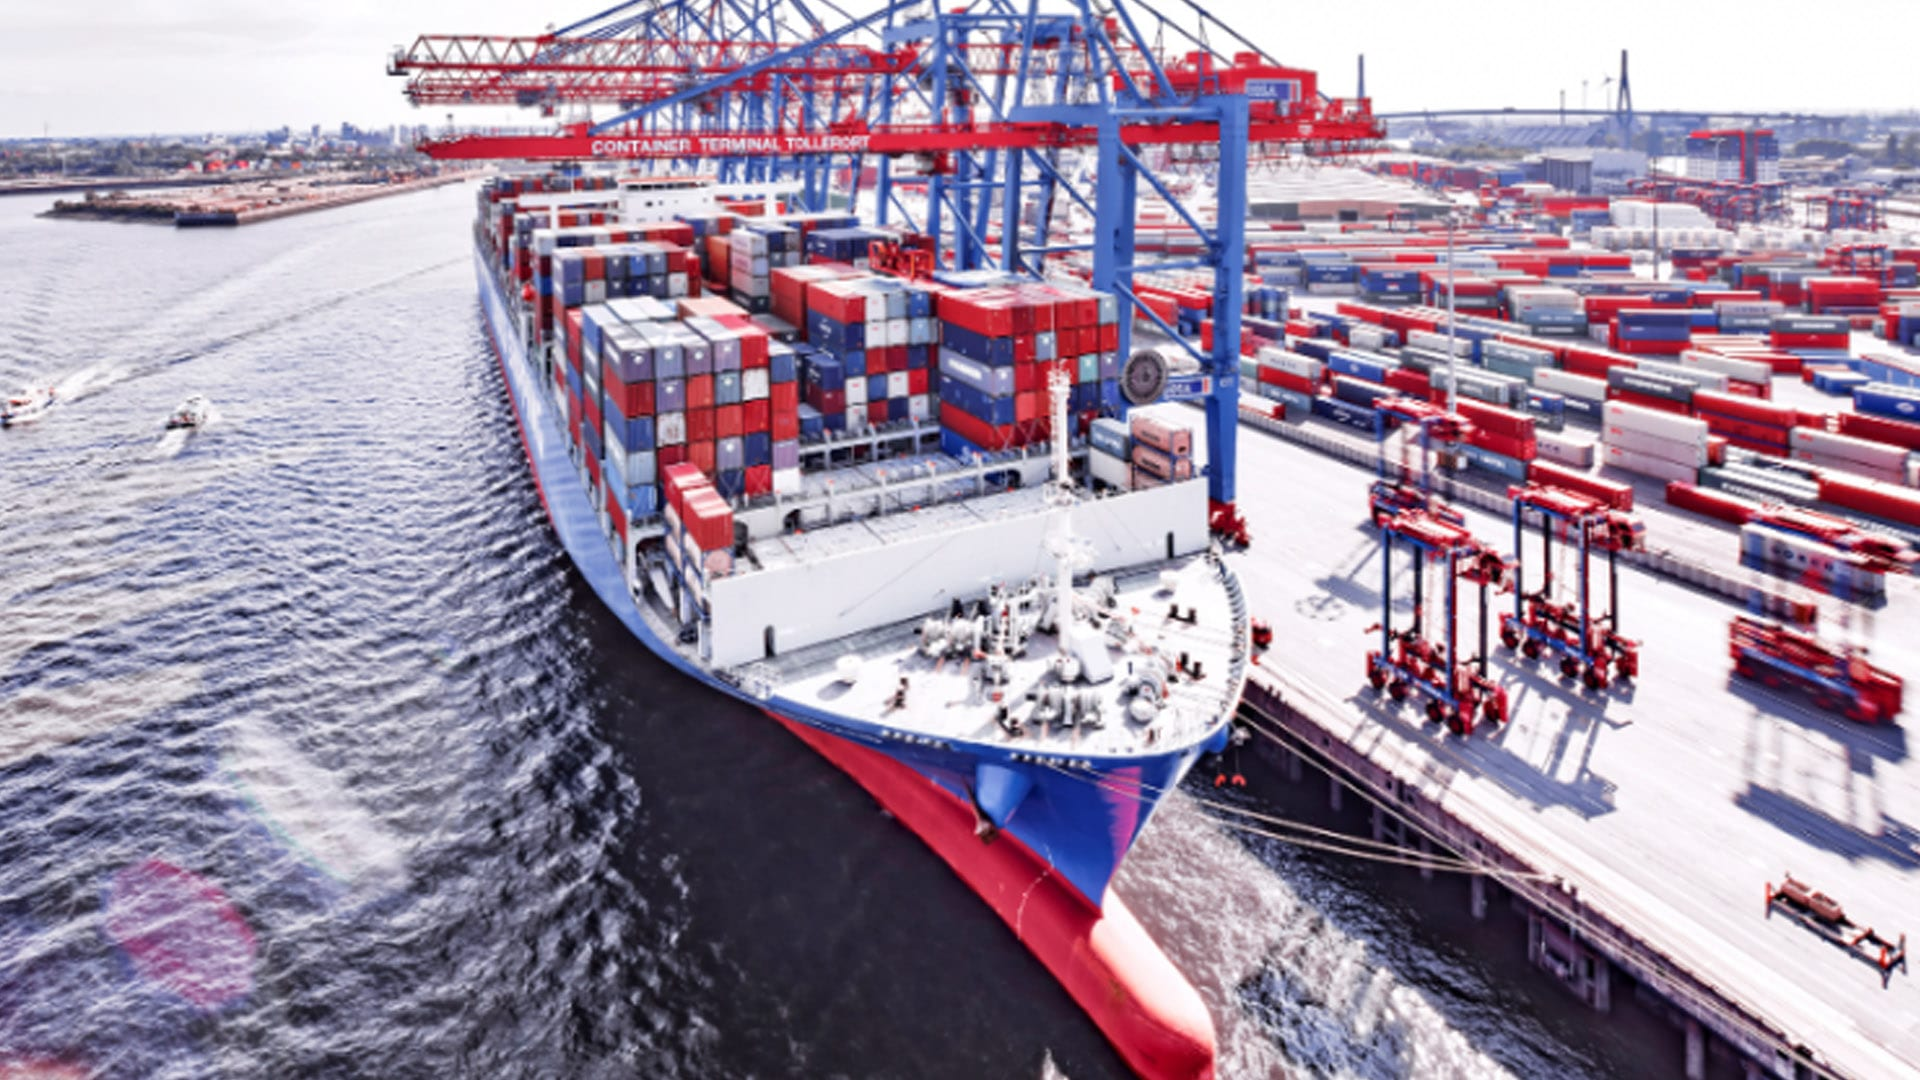 HHLA Handles More Containers in 2019